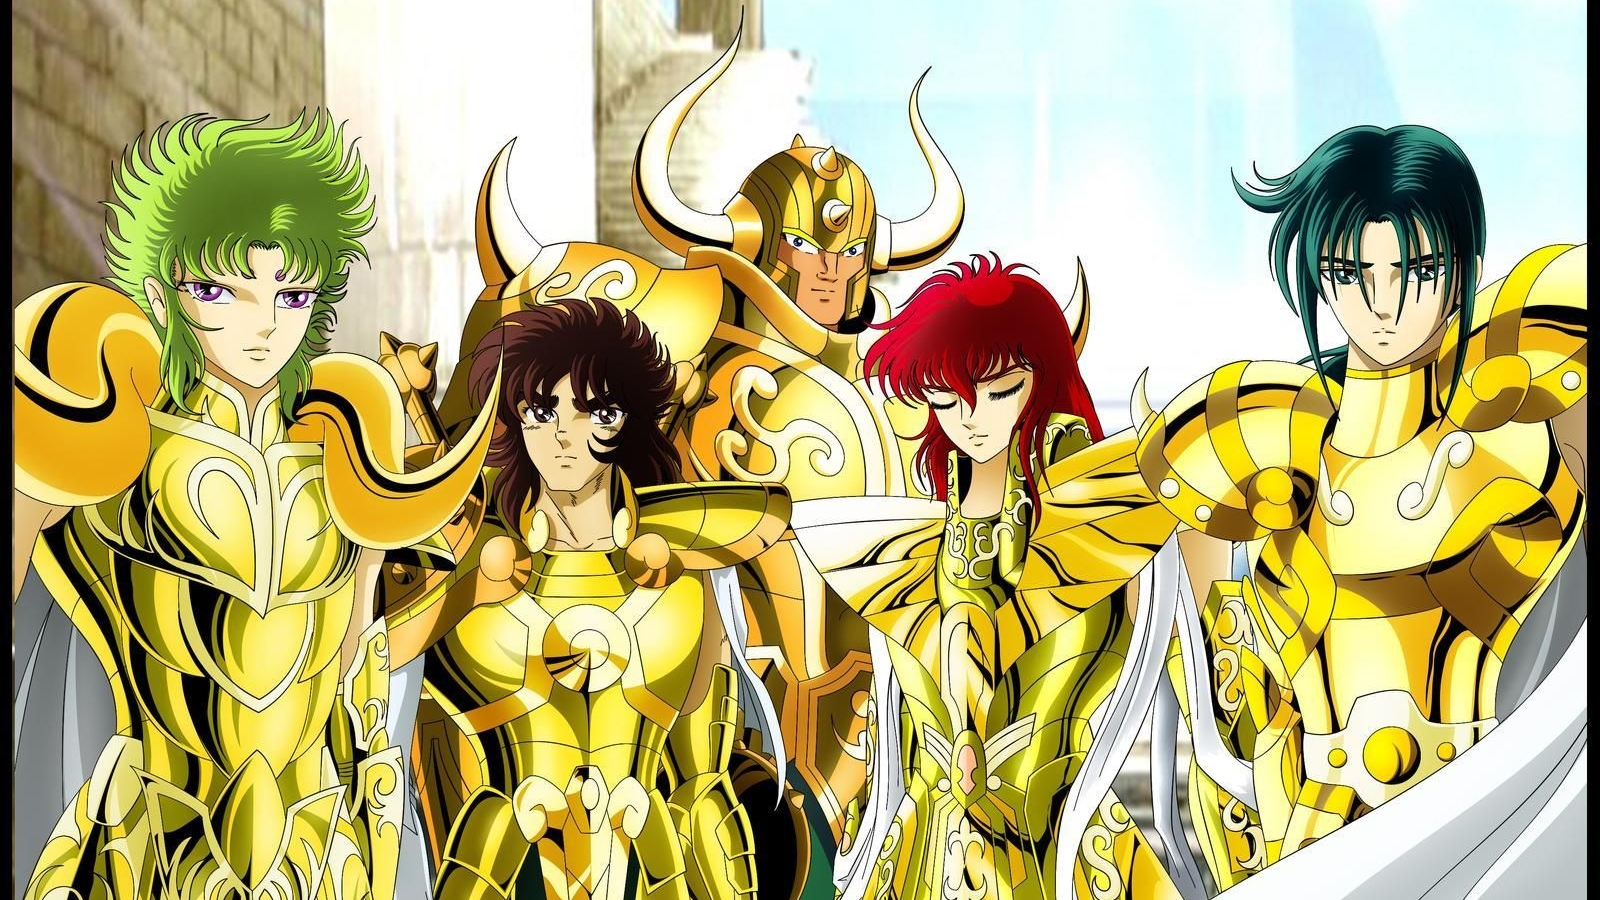 El manga Saint Seiya: Next Dimension - Meiō Shinwa tendrá